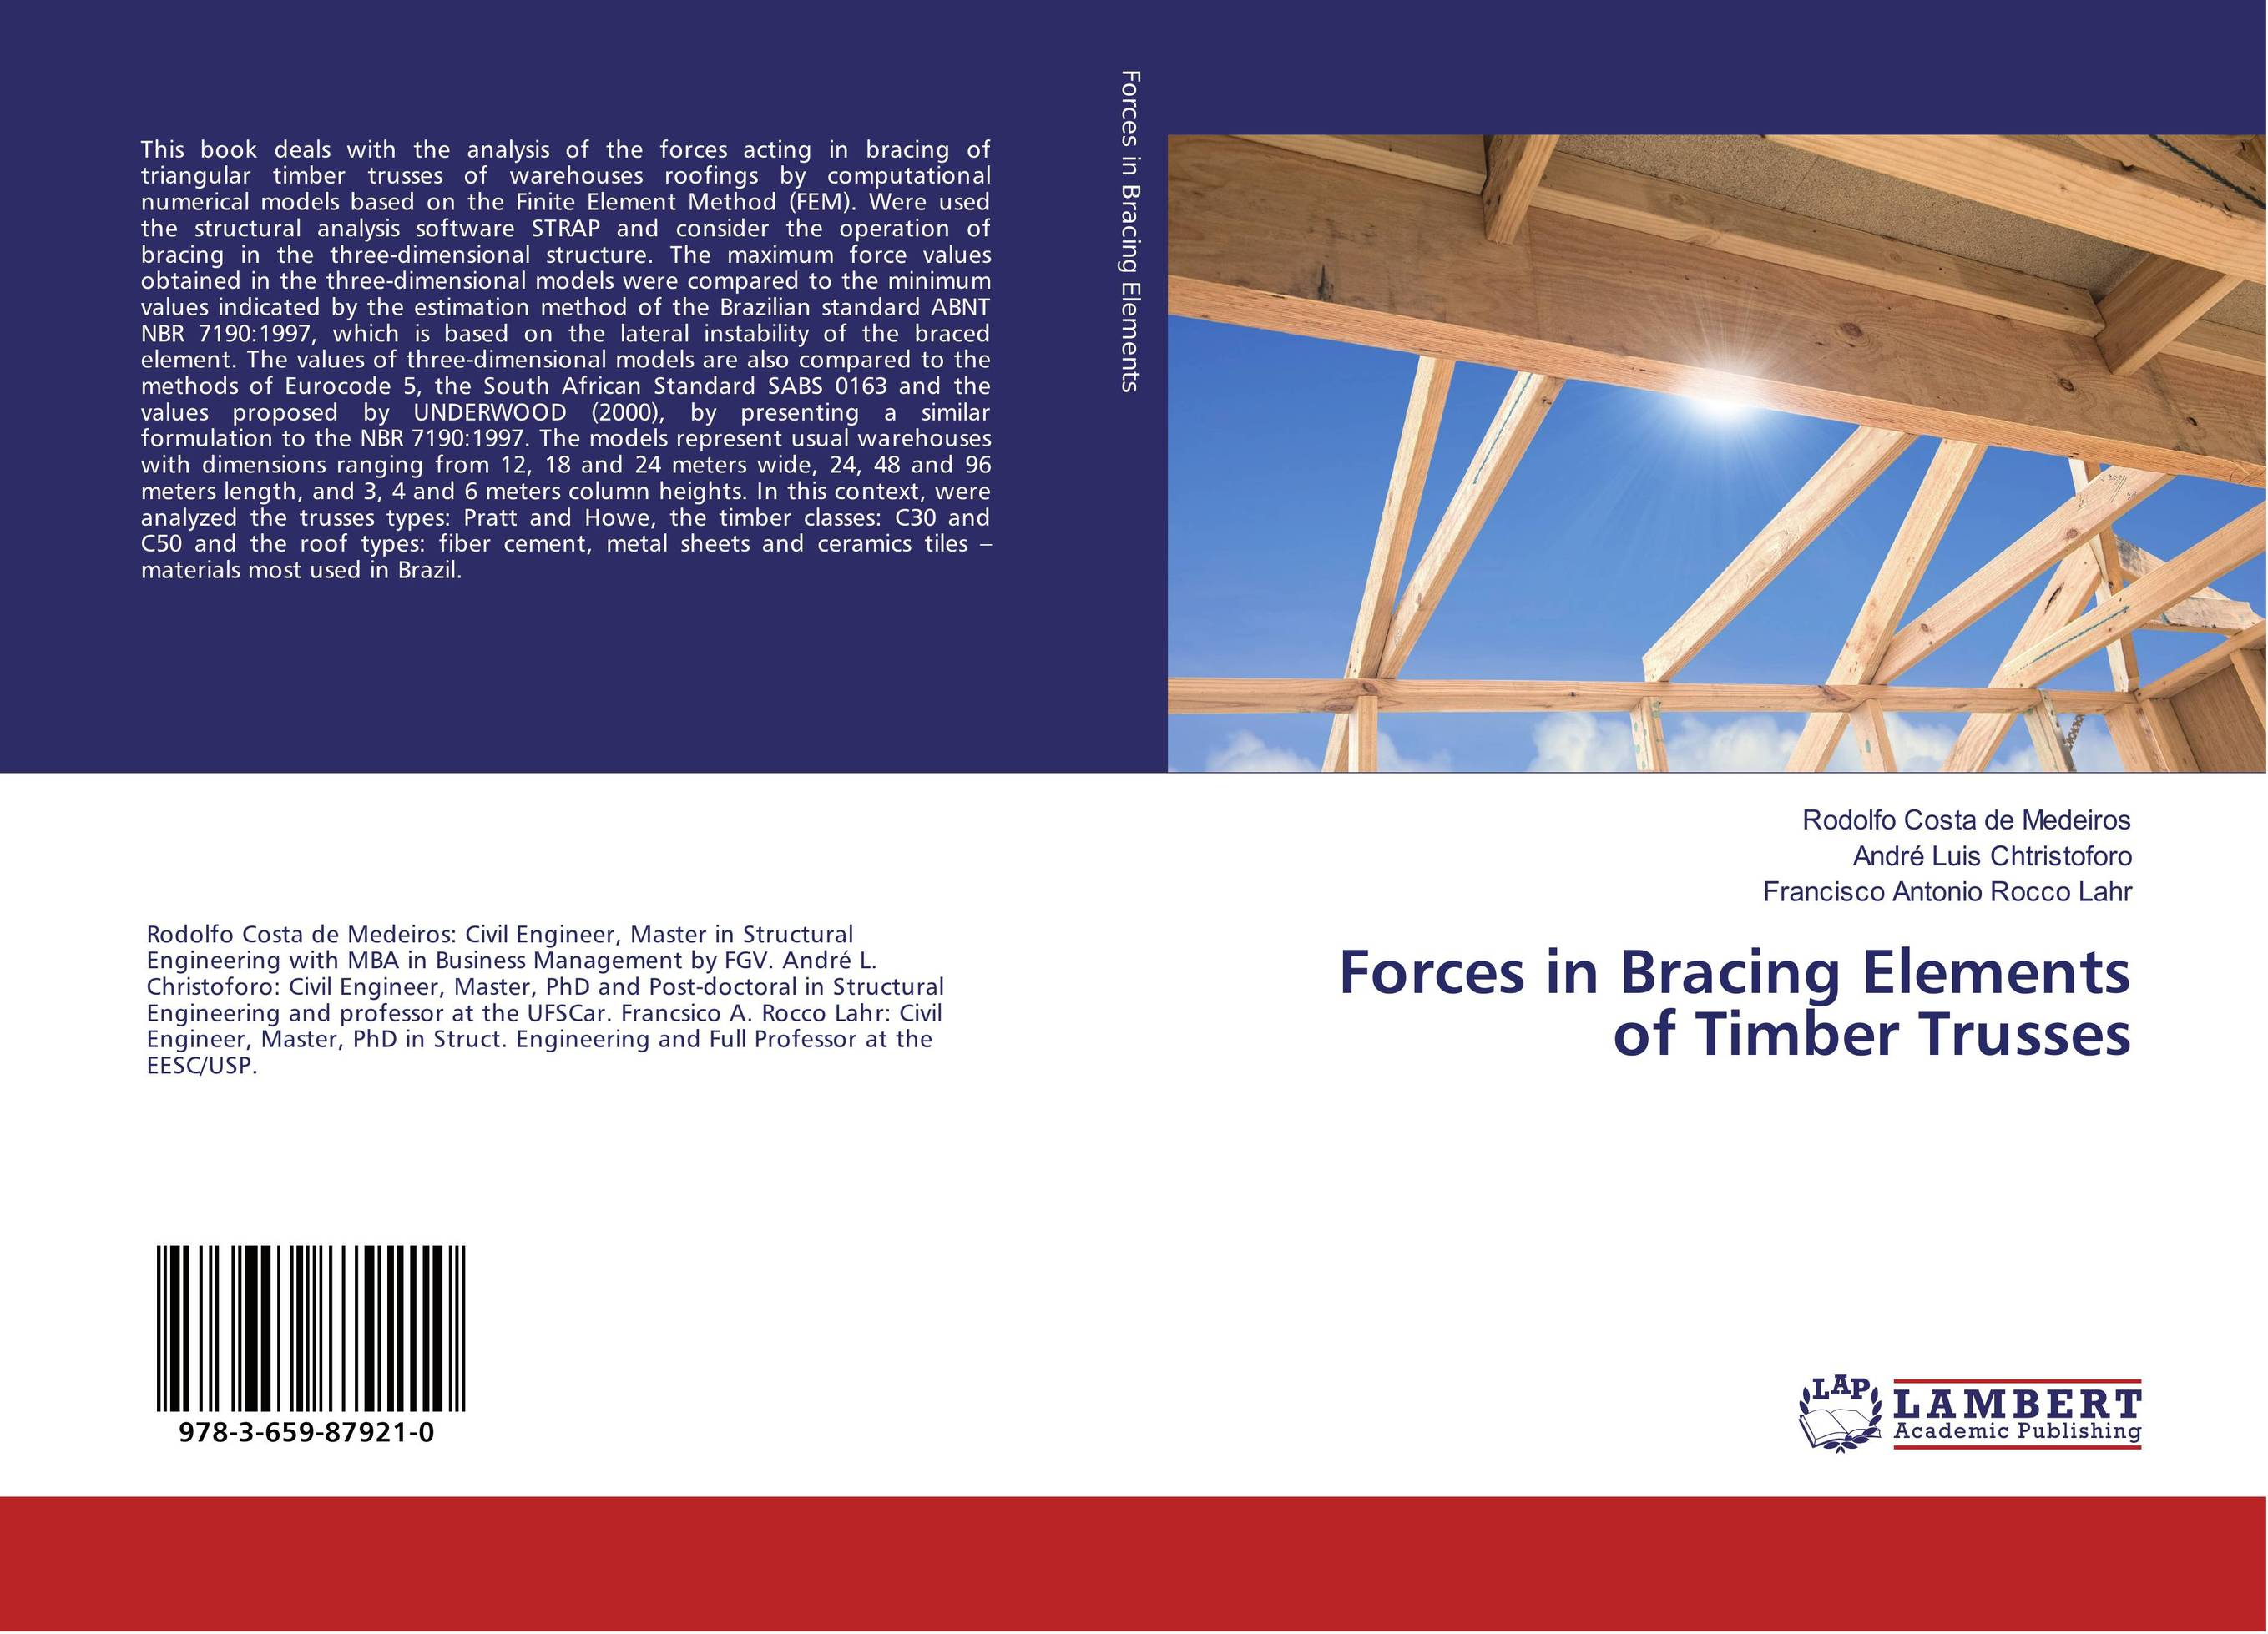 structural use of timber Structural use of timber code of practice for timber framed walls buildings other than dwellings not exceeding four storeys (amd corrigendum 13630) (no longer current but cited in building regulations.